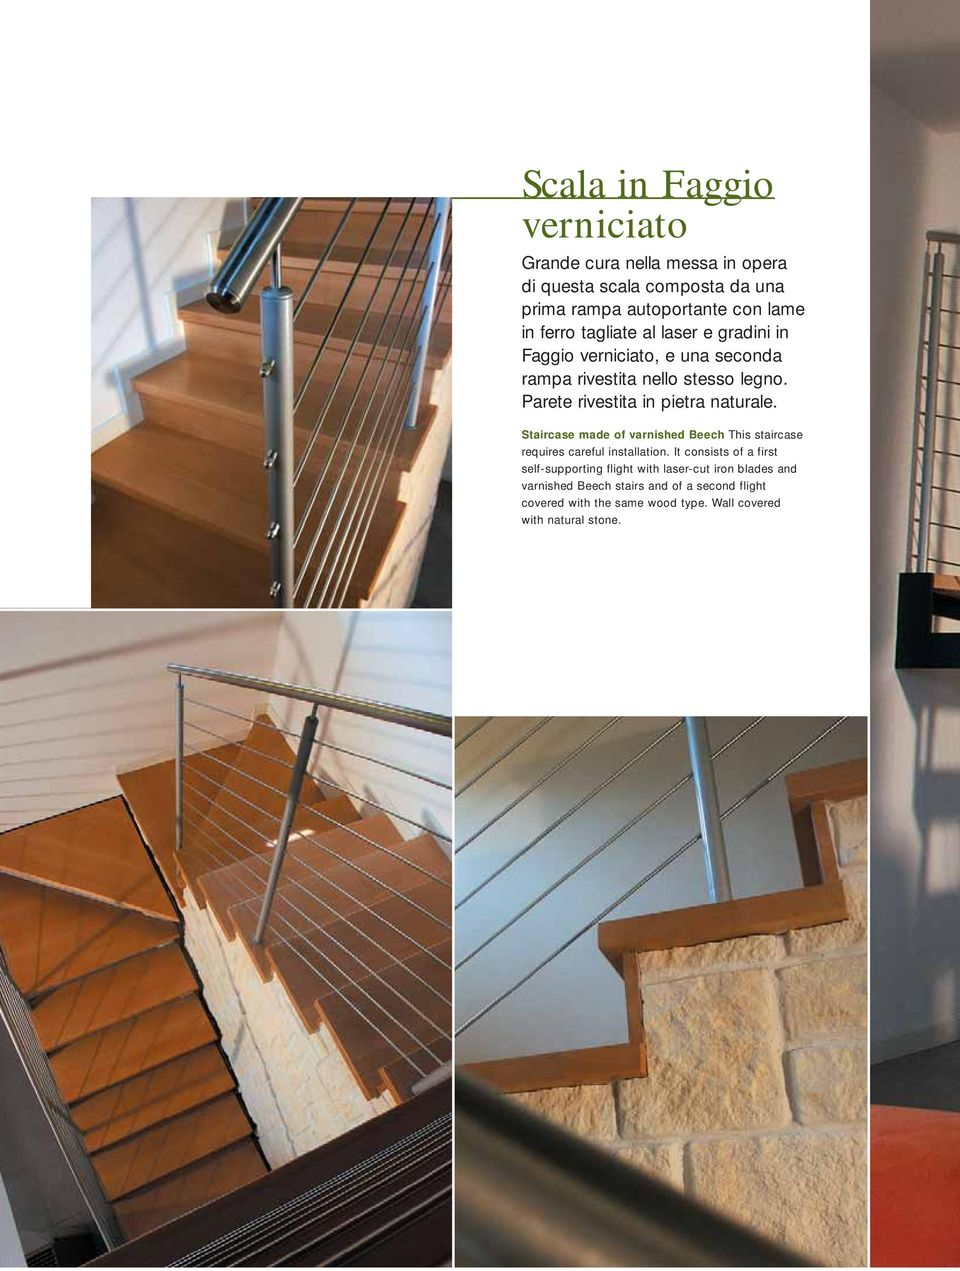 Parete rivestita in pietra naturale. Staircase made of varnished Beech This staircase requires careful installation.